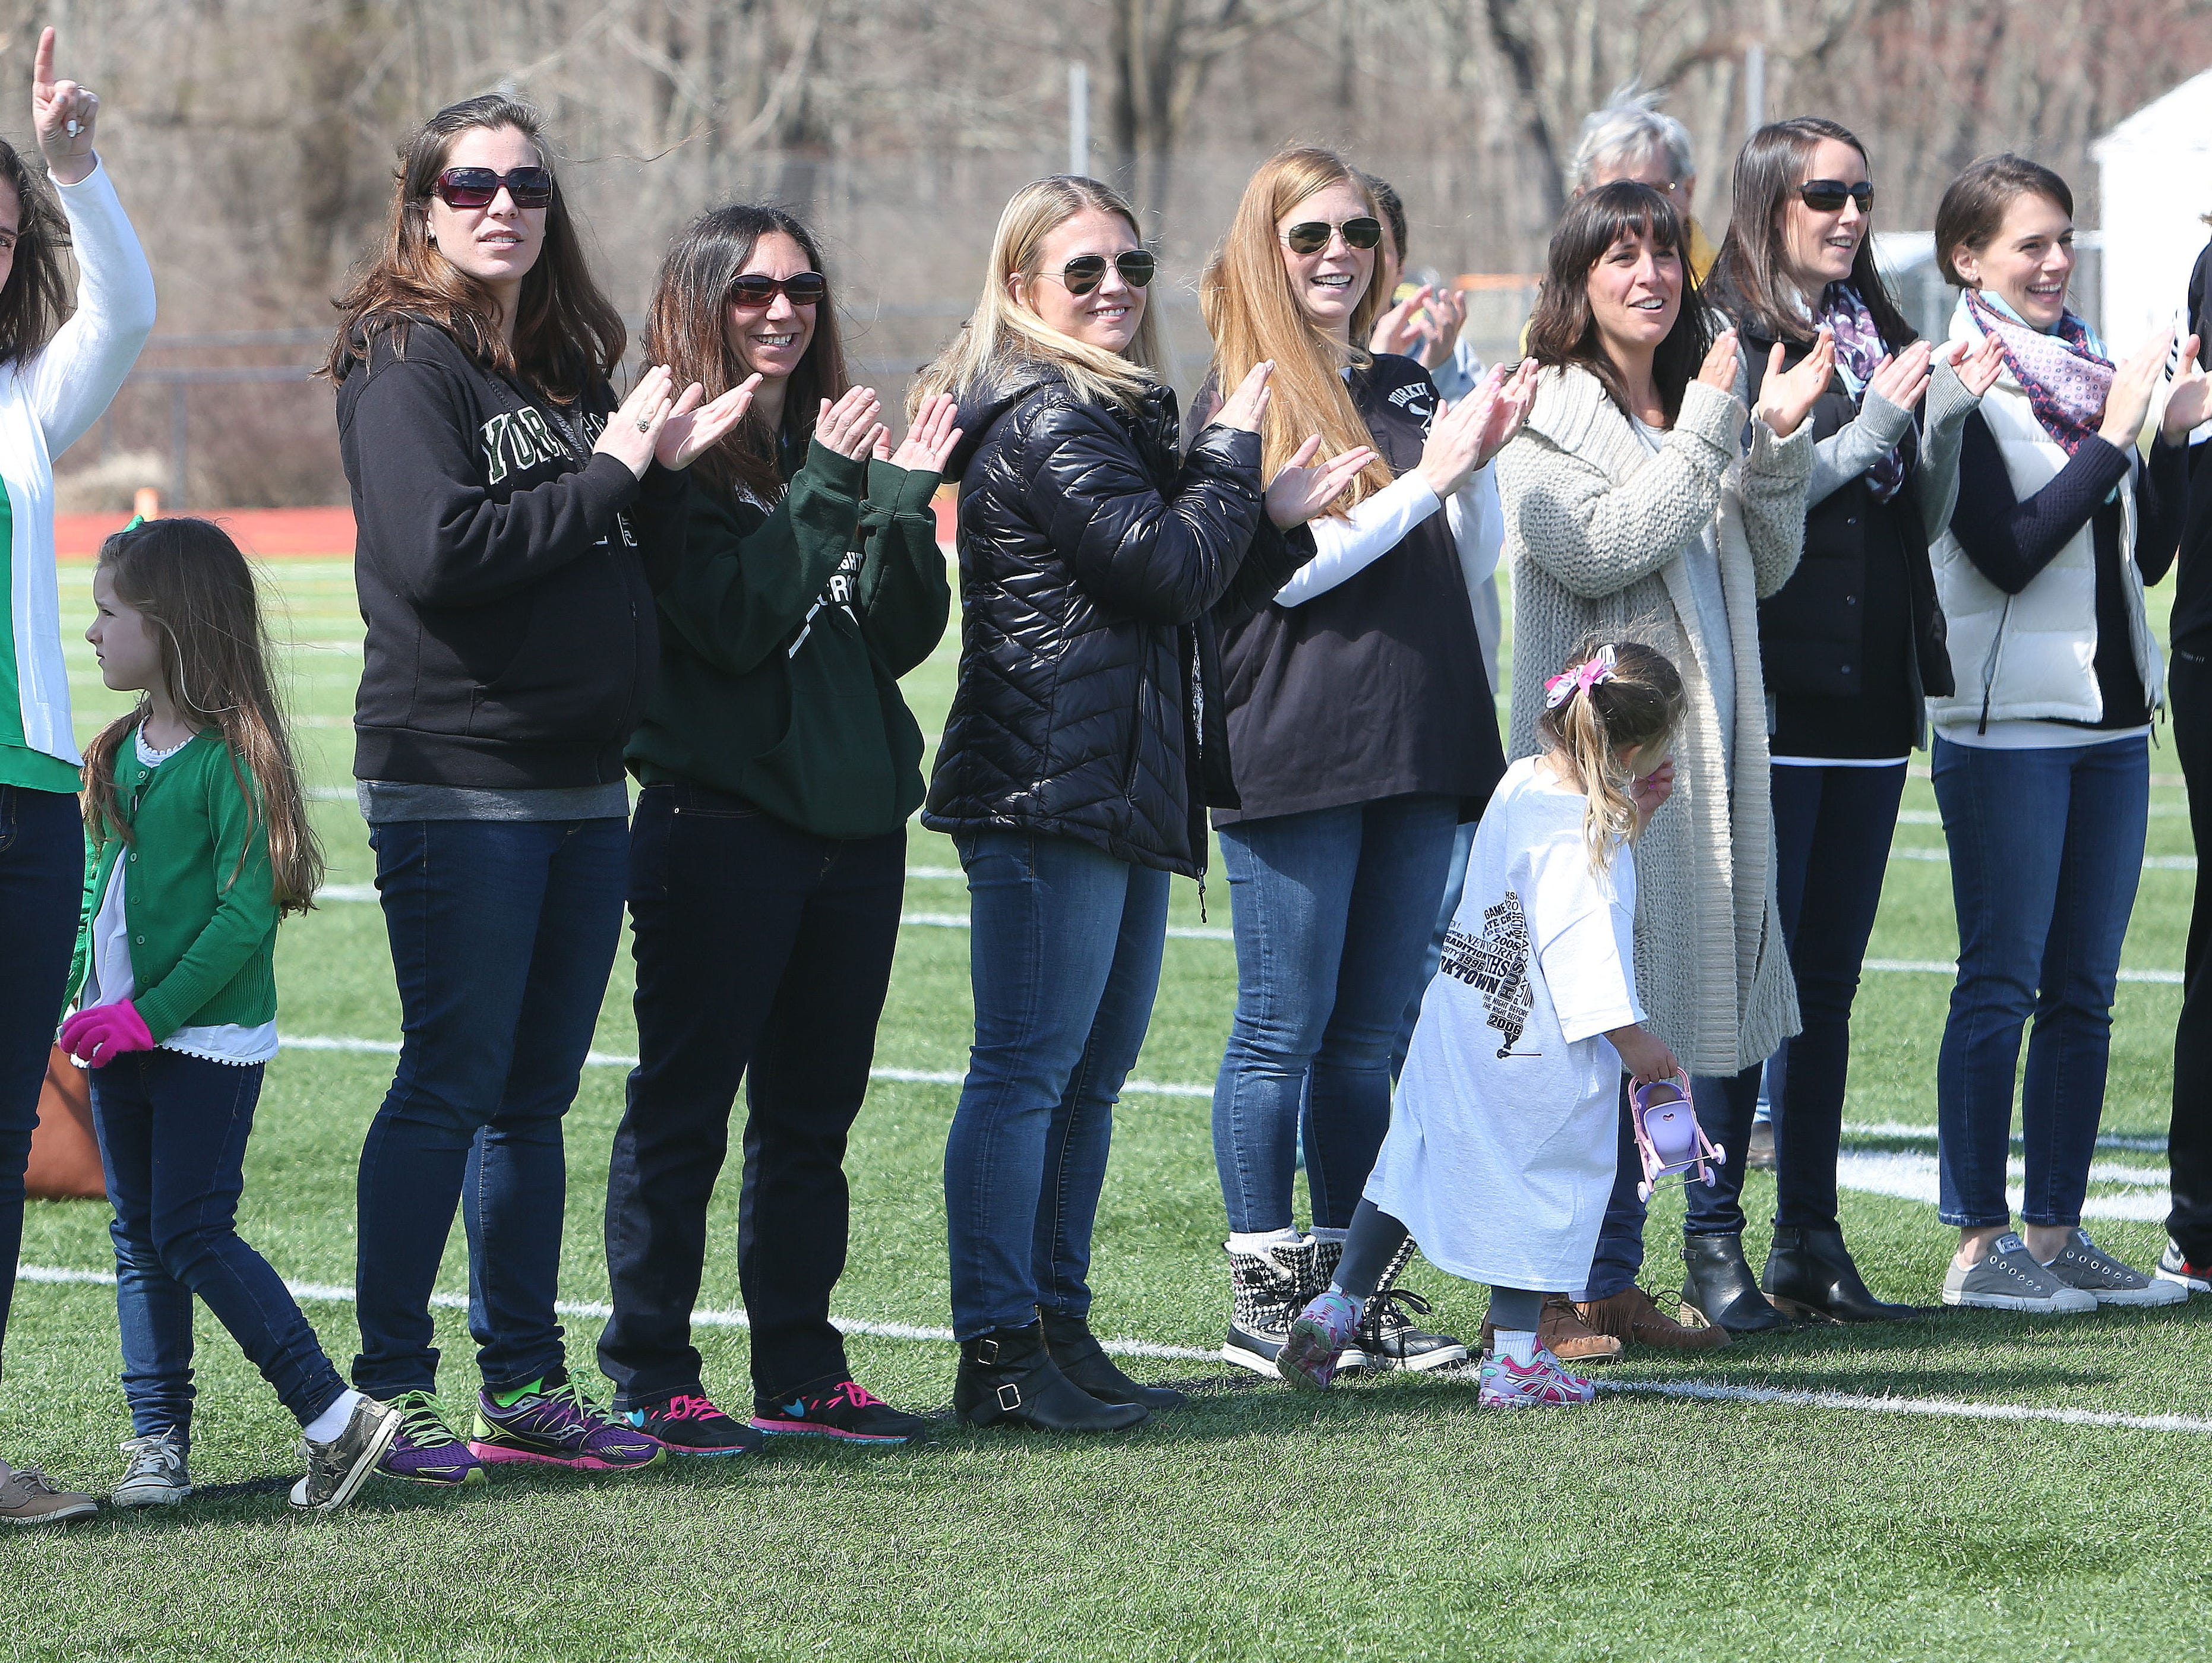 Former Yorktown girls lacrosse players wave to the crowd as they are introduced during a halftime ceremony honoring the 1996 and 2006 state championship teams at Yorktown High School during Saturday's game against Arlington.